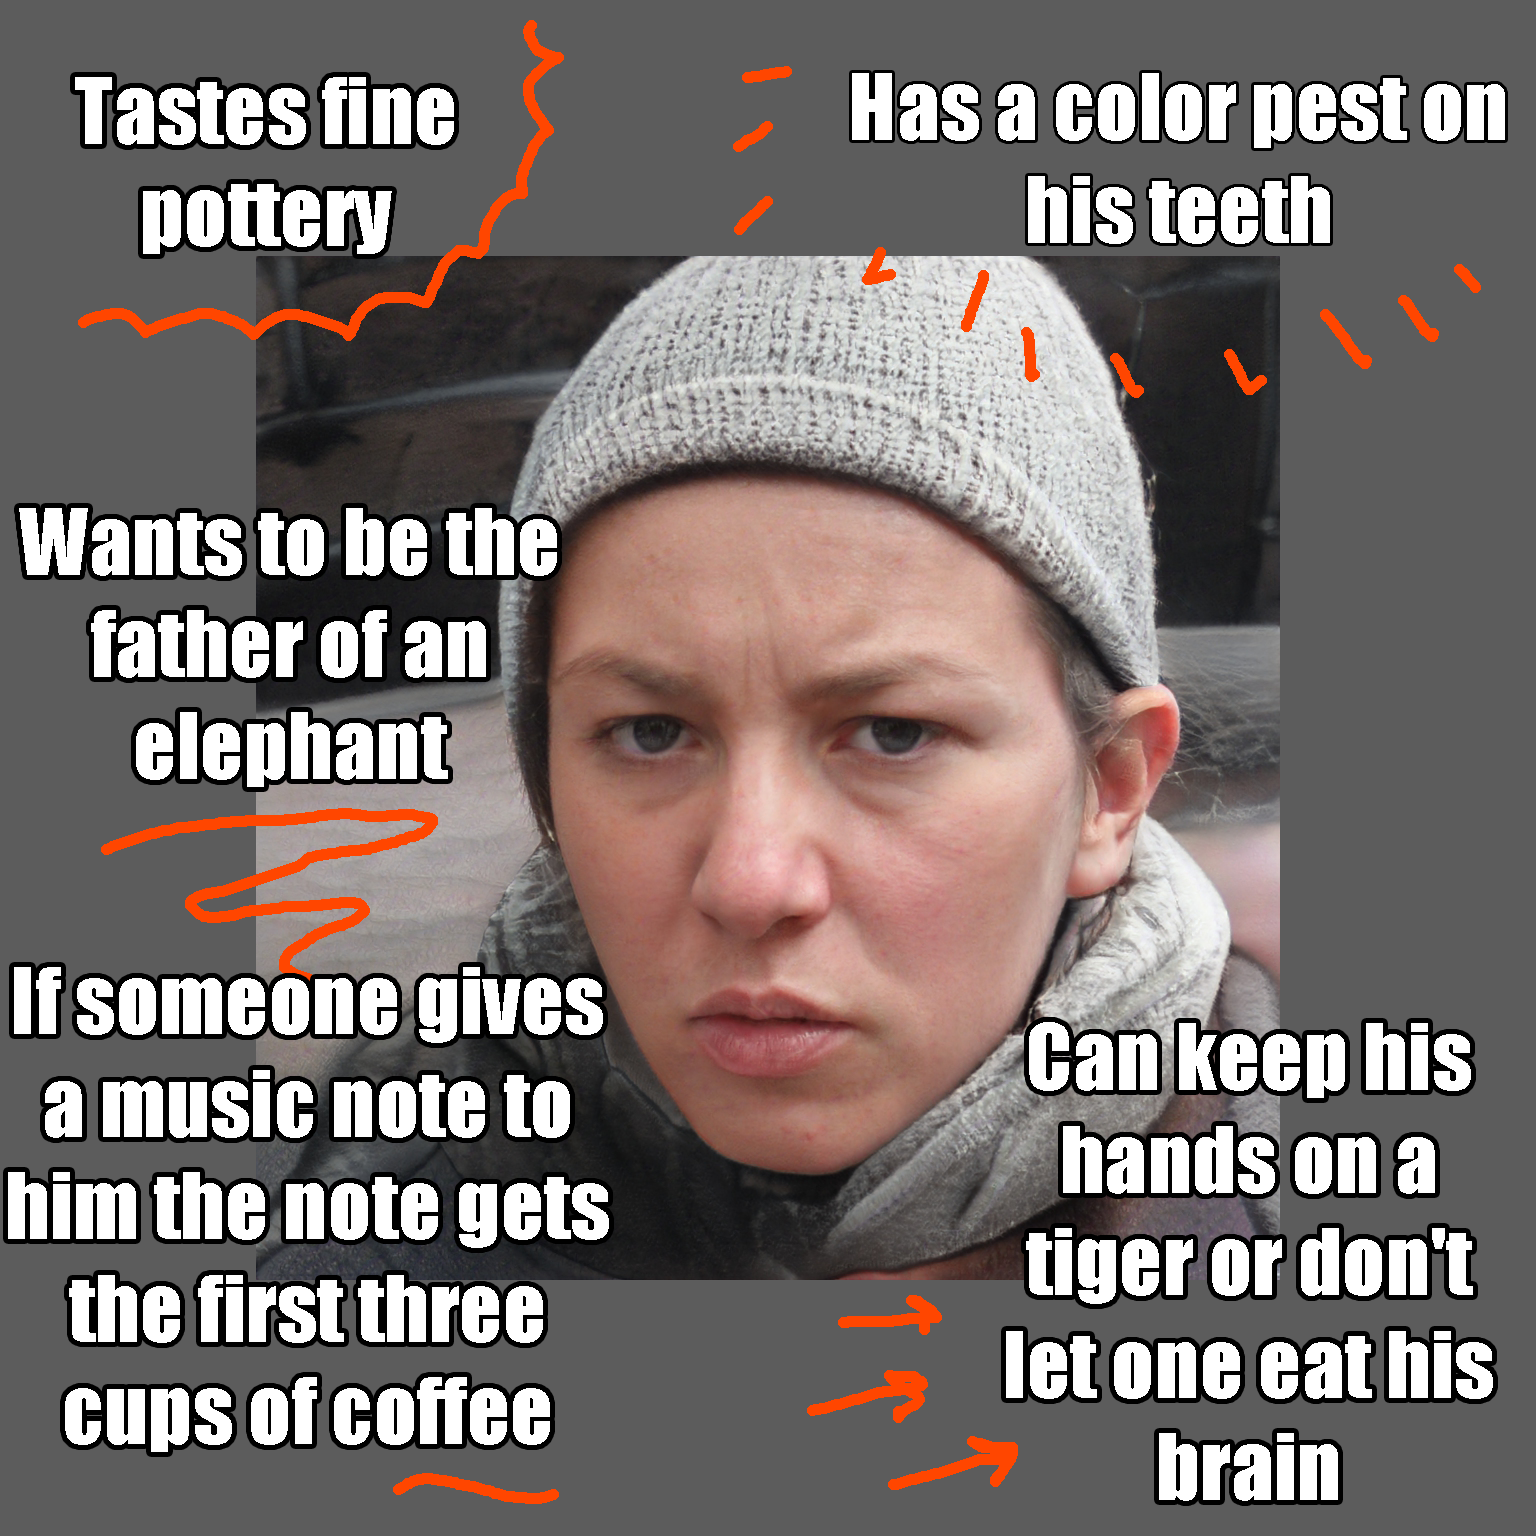 Tastes fine pottery Can keep his hands on a tiger or don't let one eat his brain Wants to be the father of an elephant Has a color pest on his teeth If someone gives a music note to him the note gets the first three cups of coffee